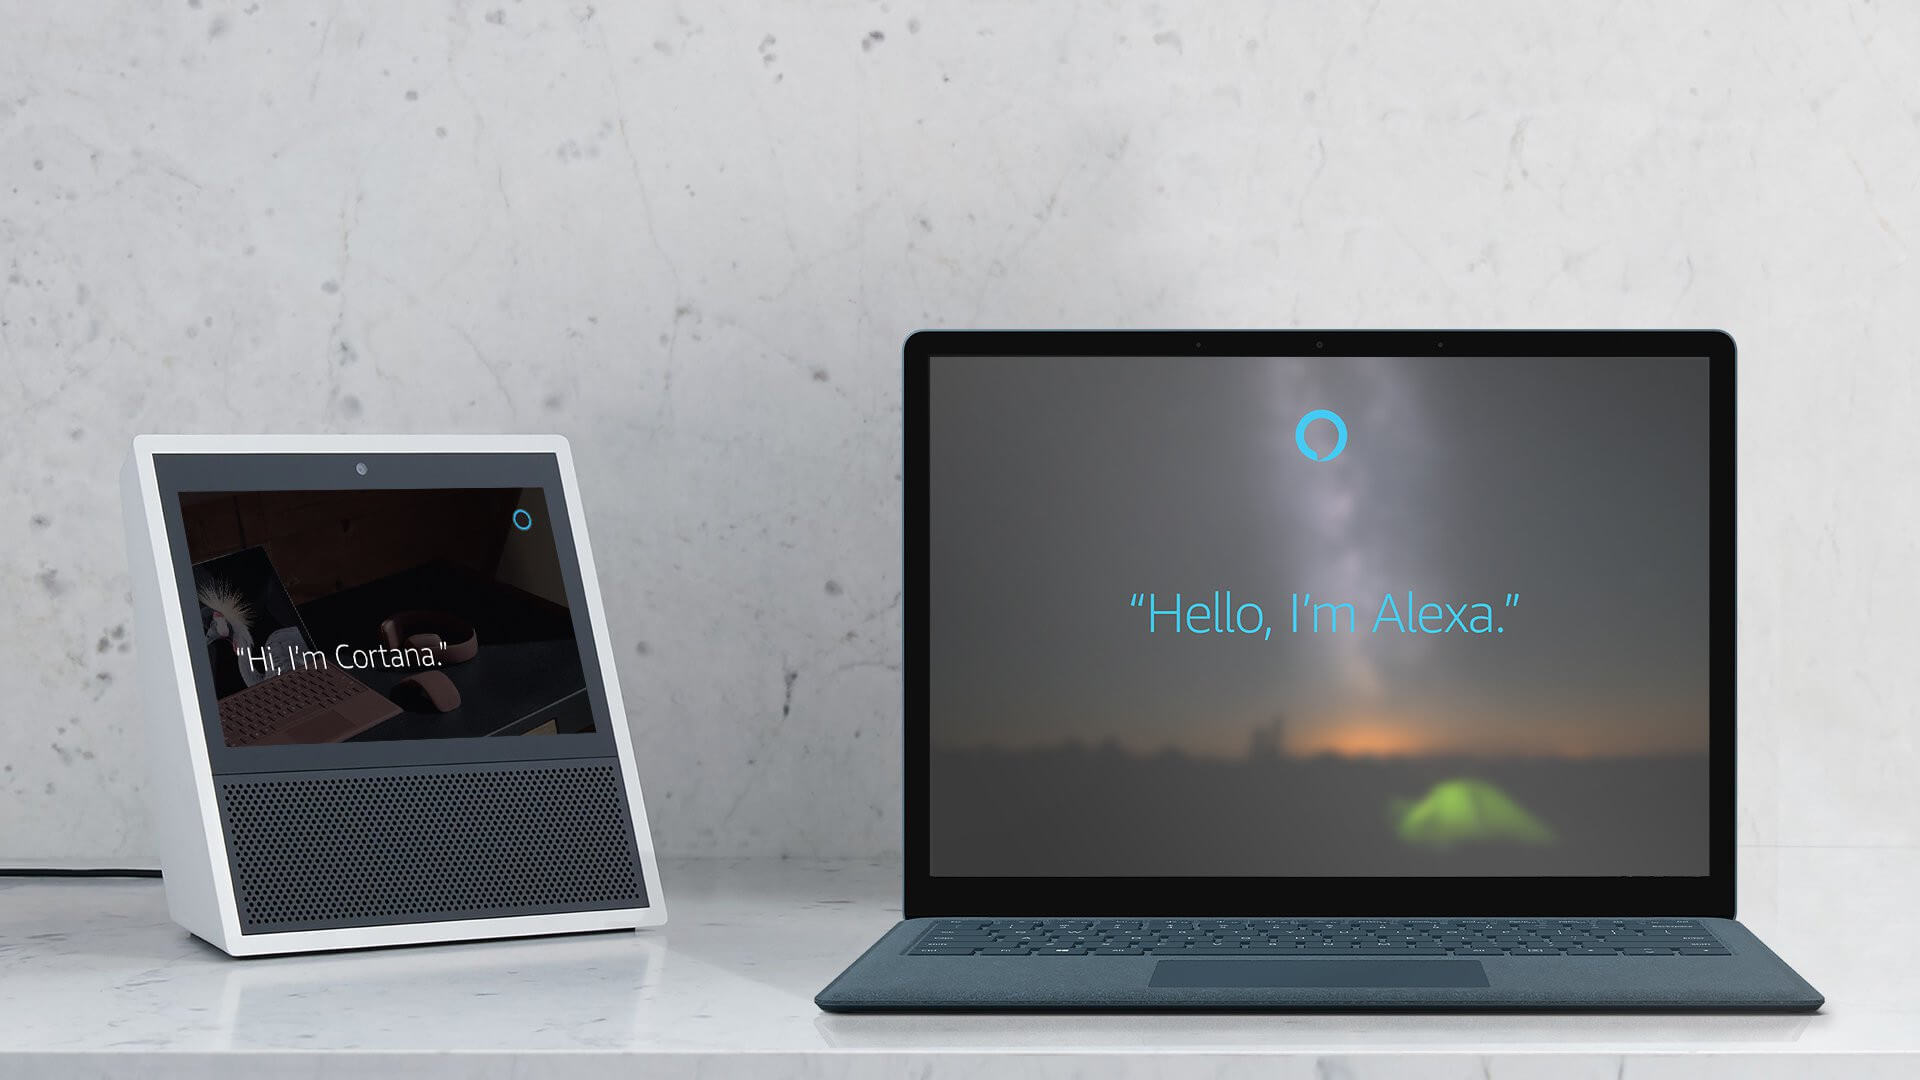 A Year Later Cortana and Alexa Are FINALLY Working Together